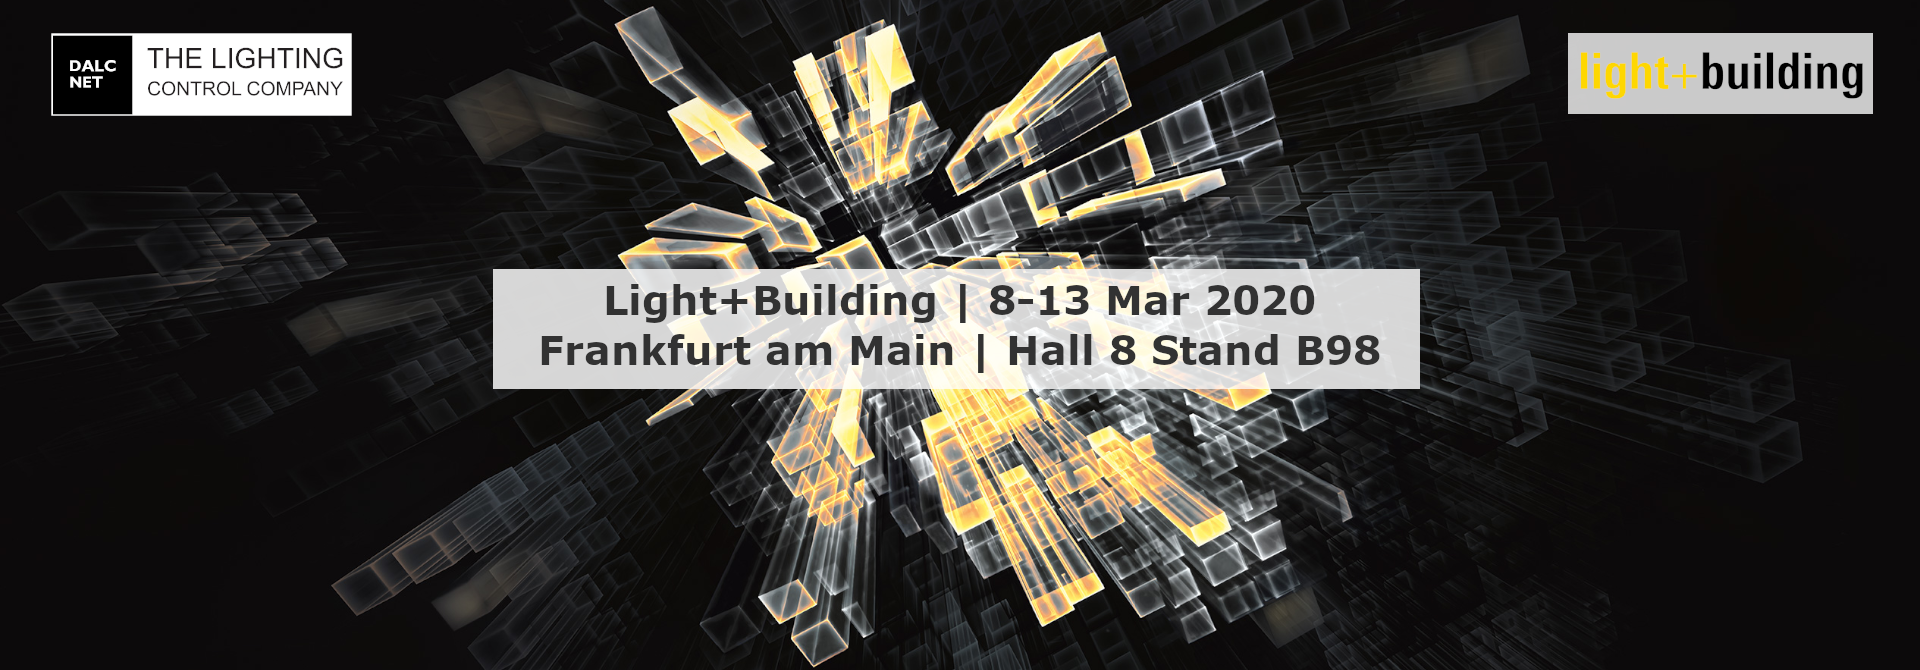 Dalcnet will present at Light+Building 2020 the last news about LED Lighting